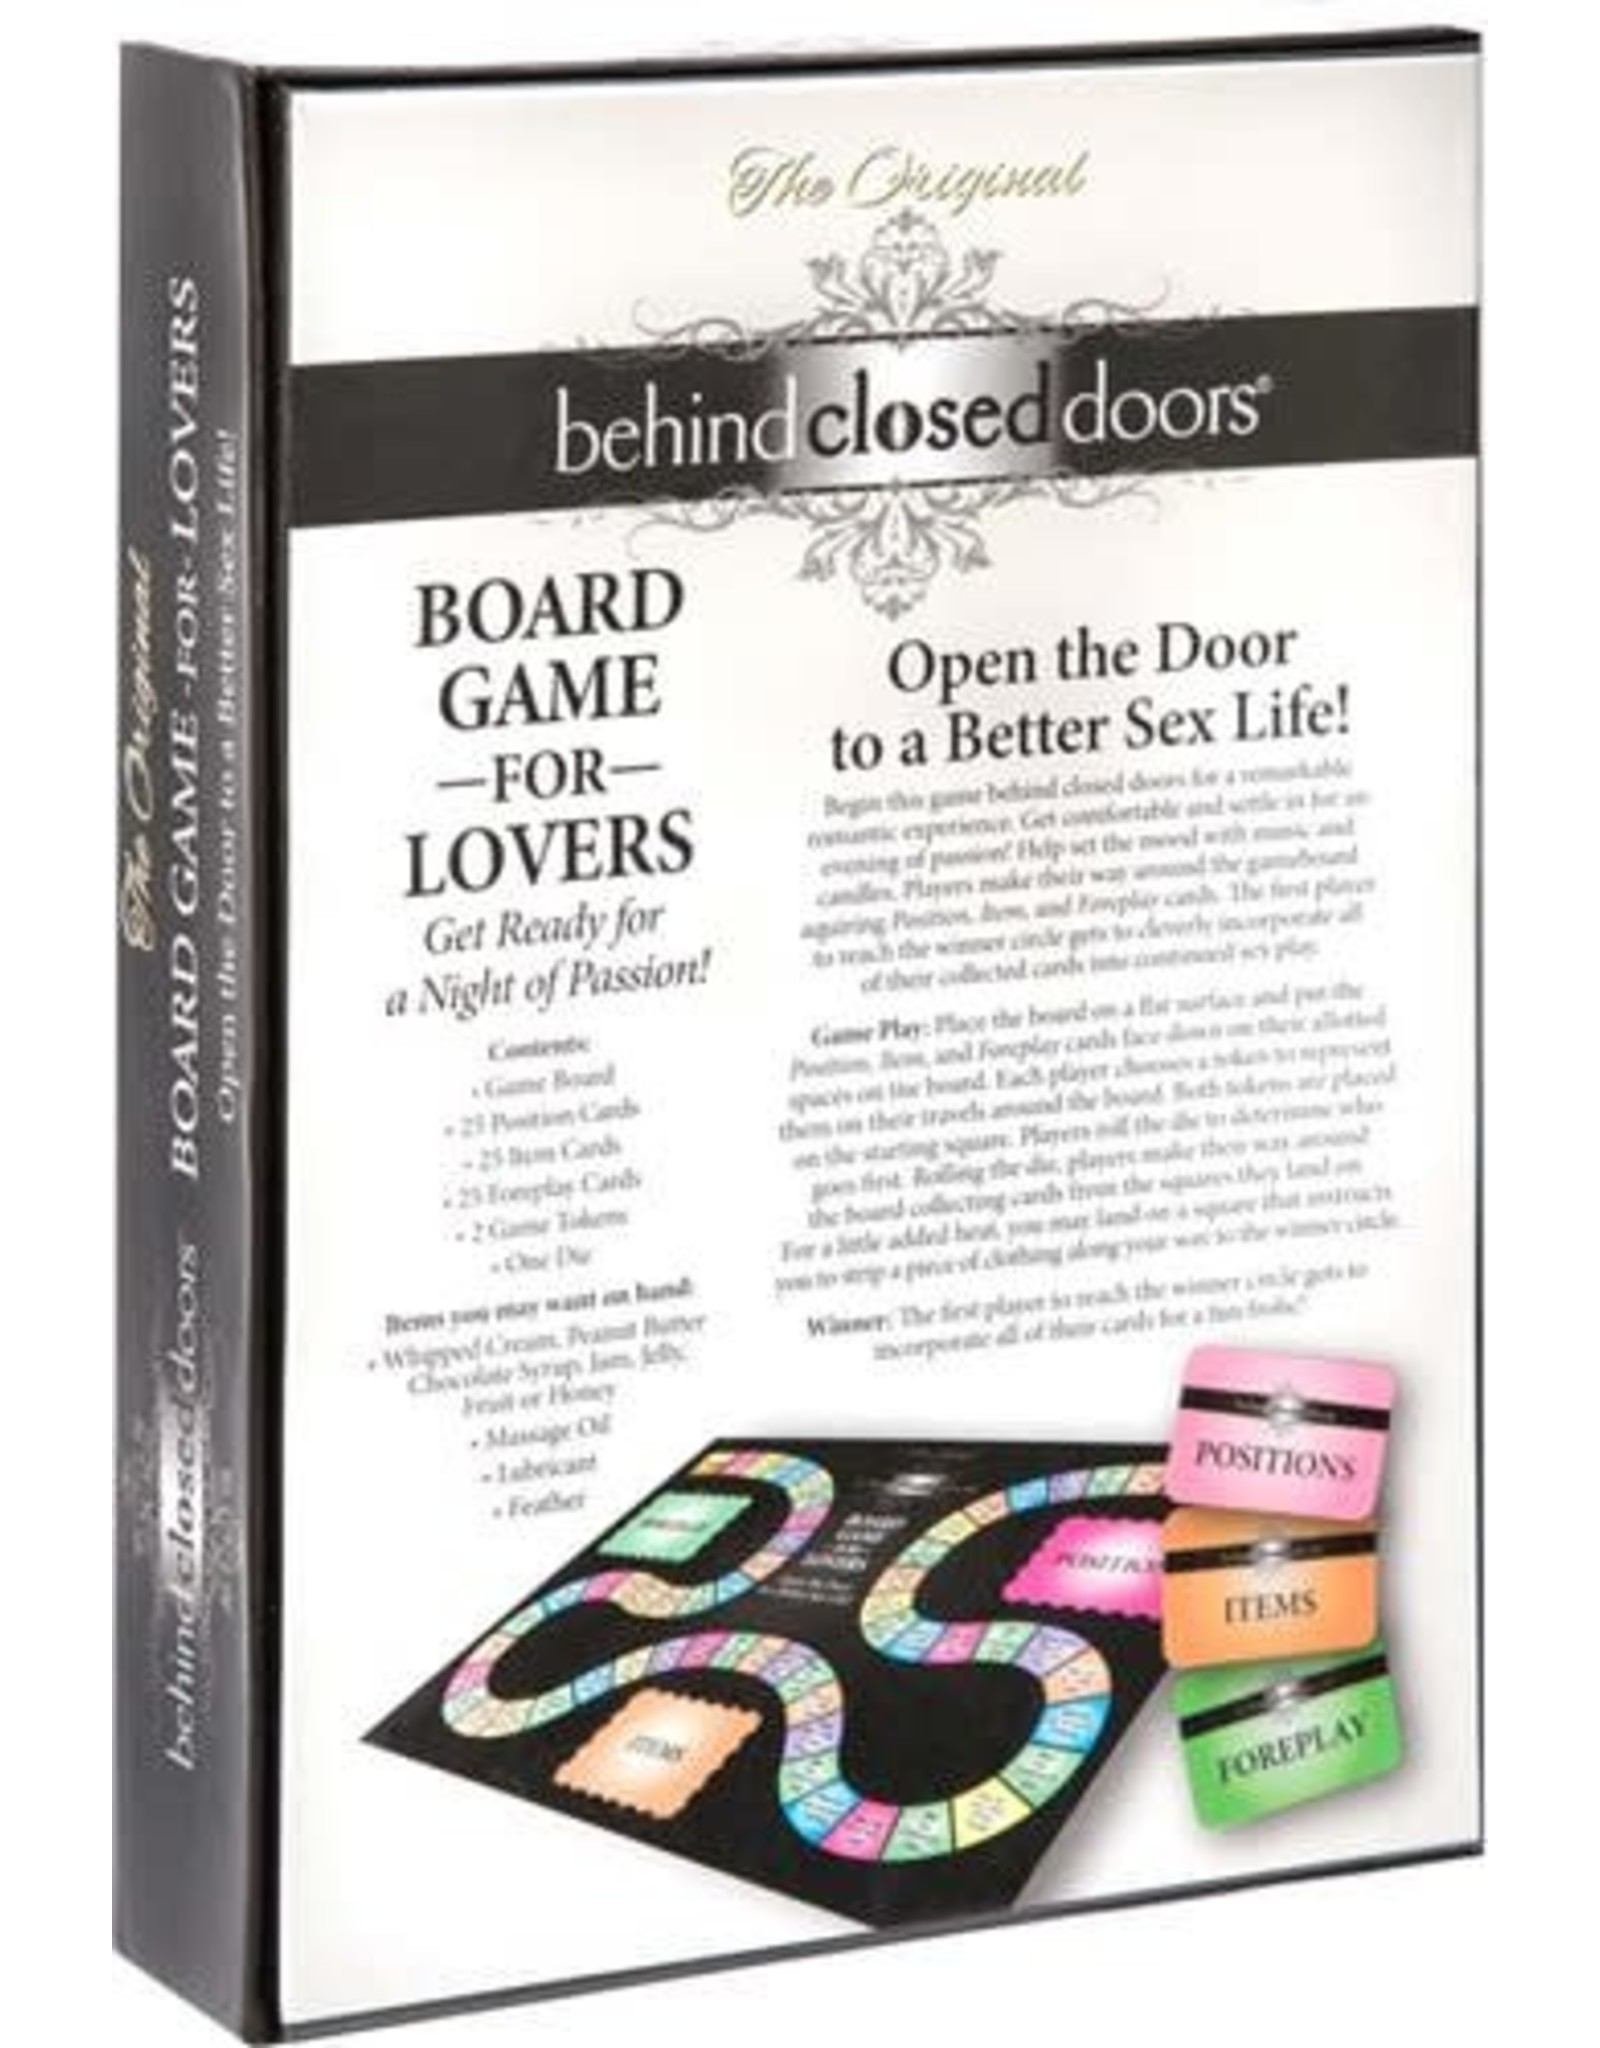 Little Genie Behind Closed Doors - Board Game For Lovers